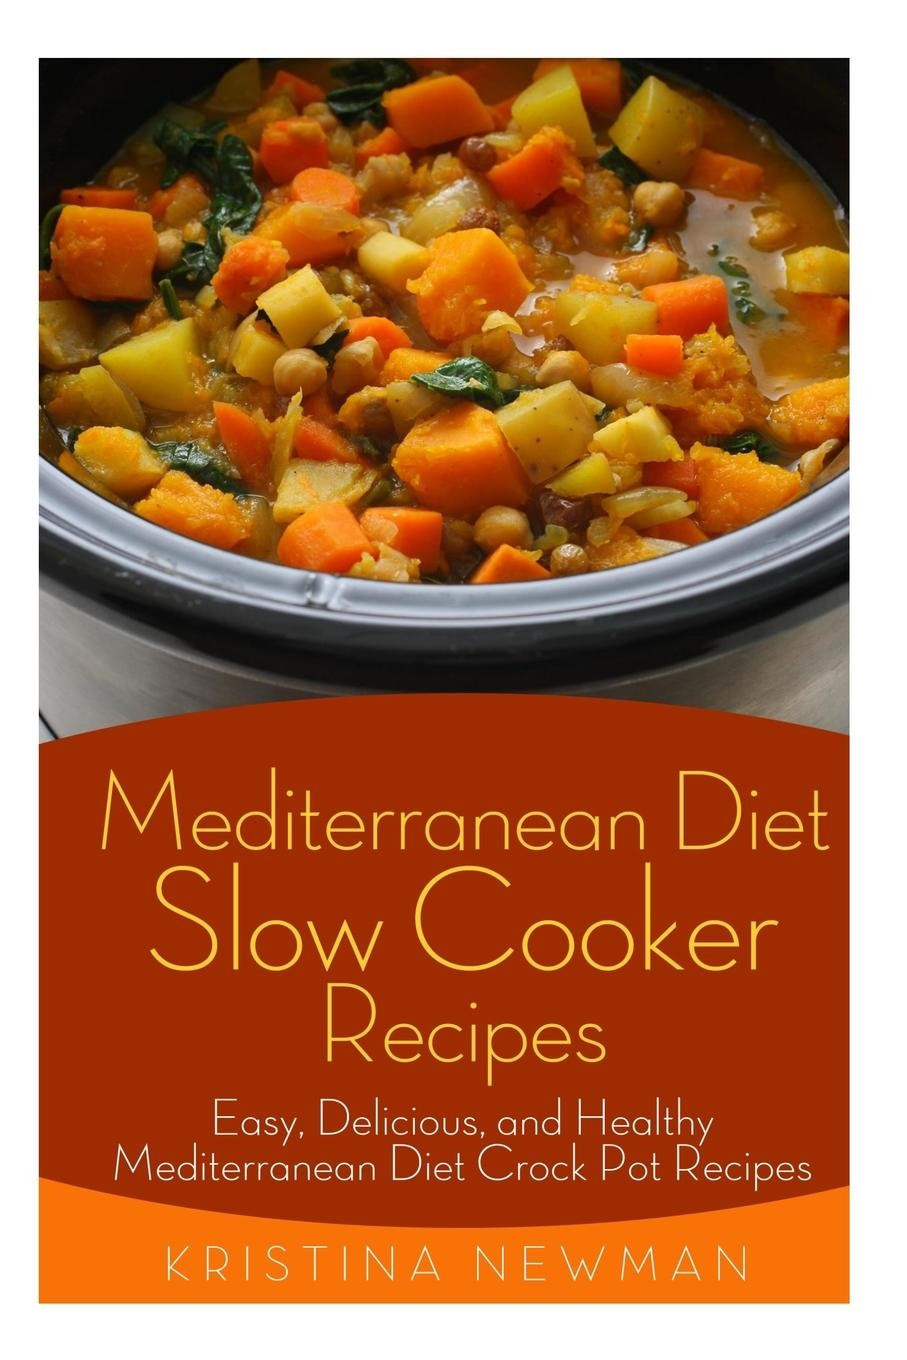 Simple Healthy Slow Cooker Recipes  Mediterranean Diet Slow Cooker Recipes Easy Delicious